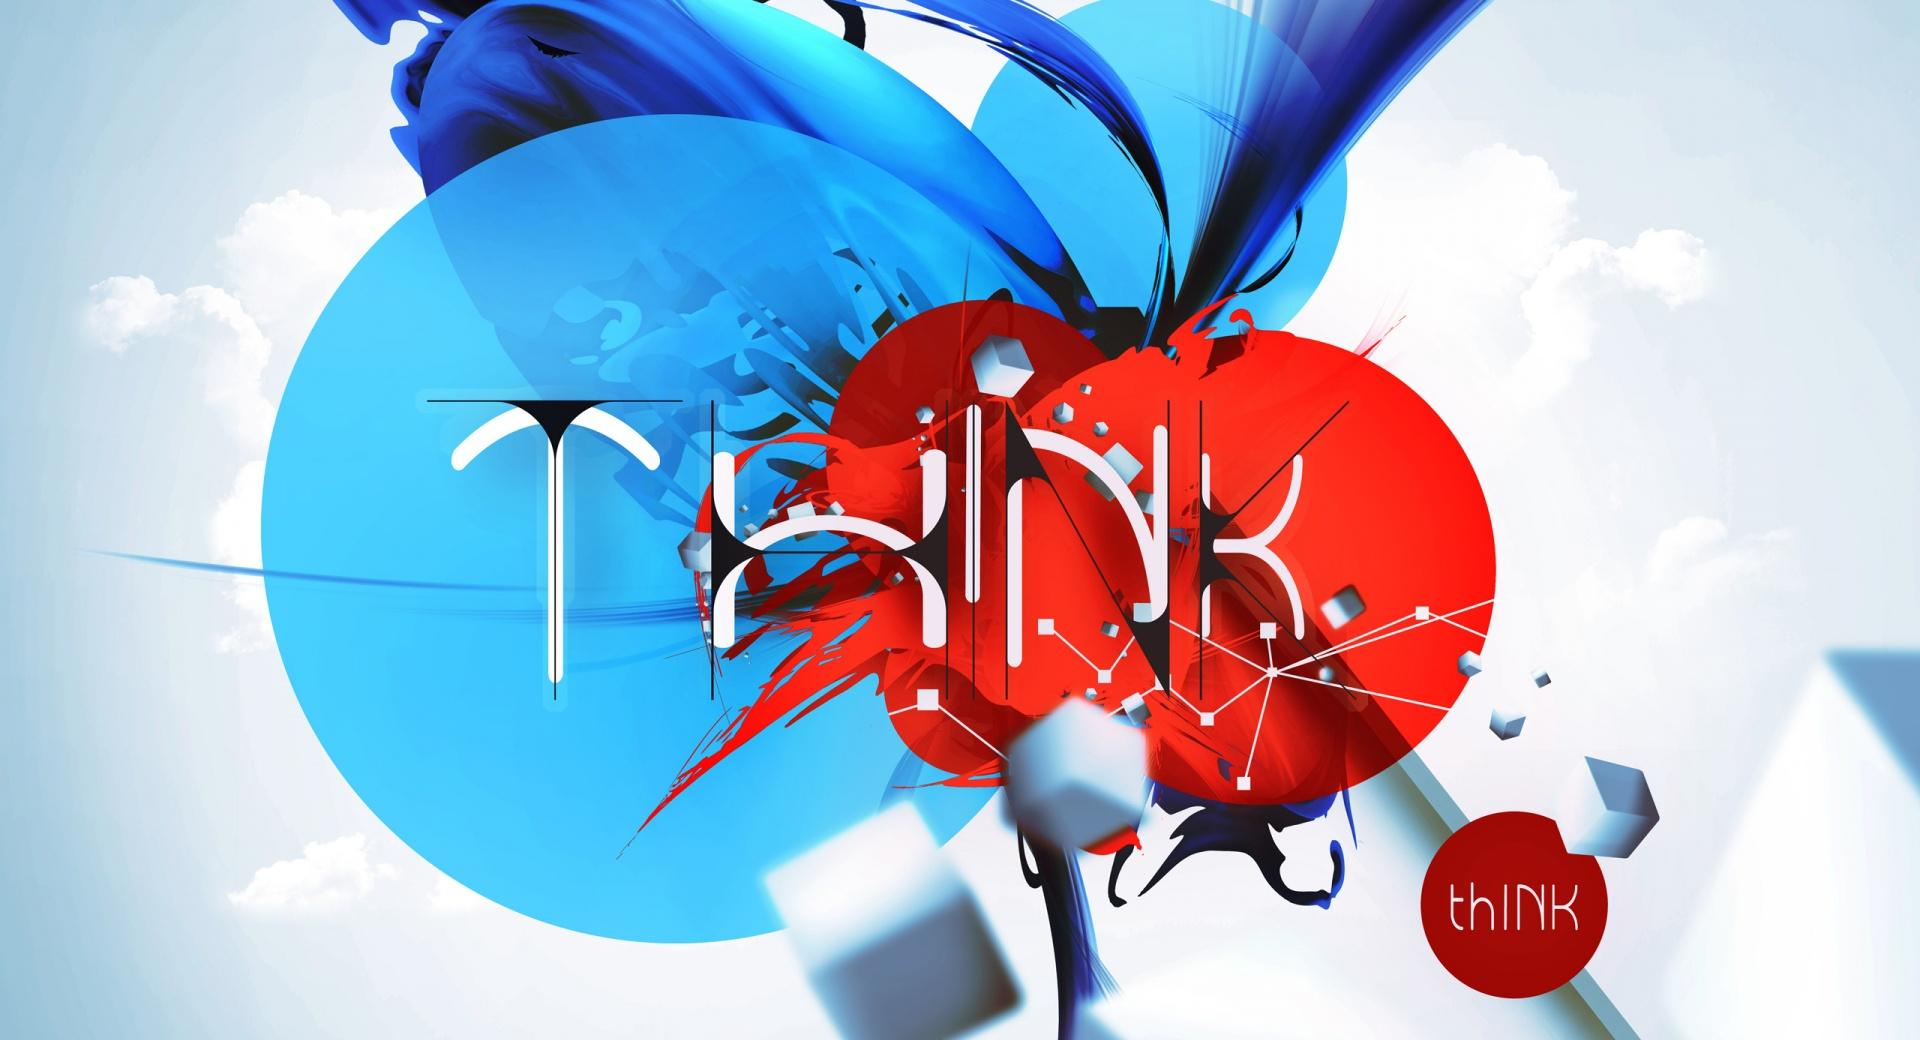 thINK (iPad retina optimized) wallpapers HD quality